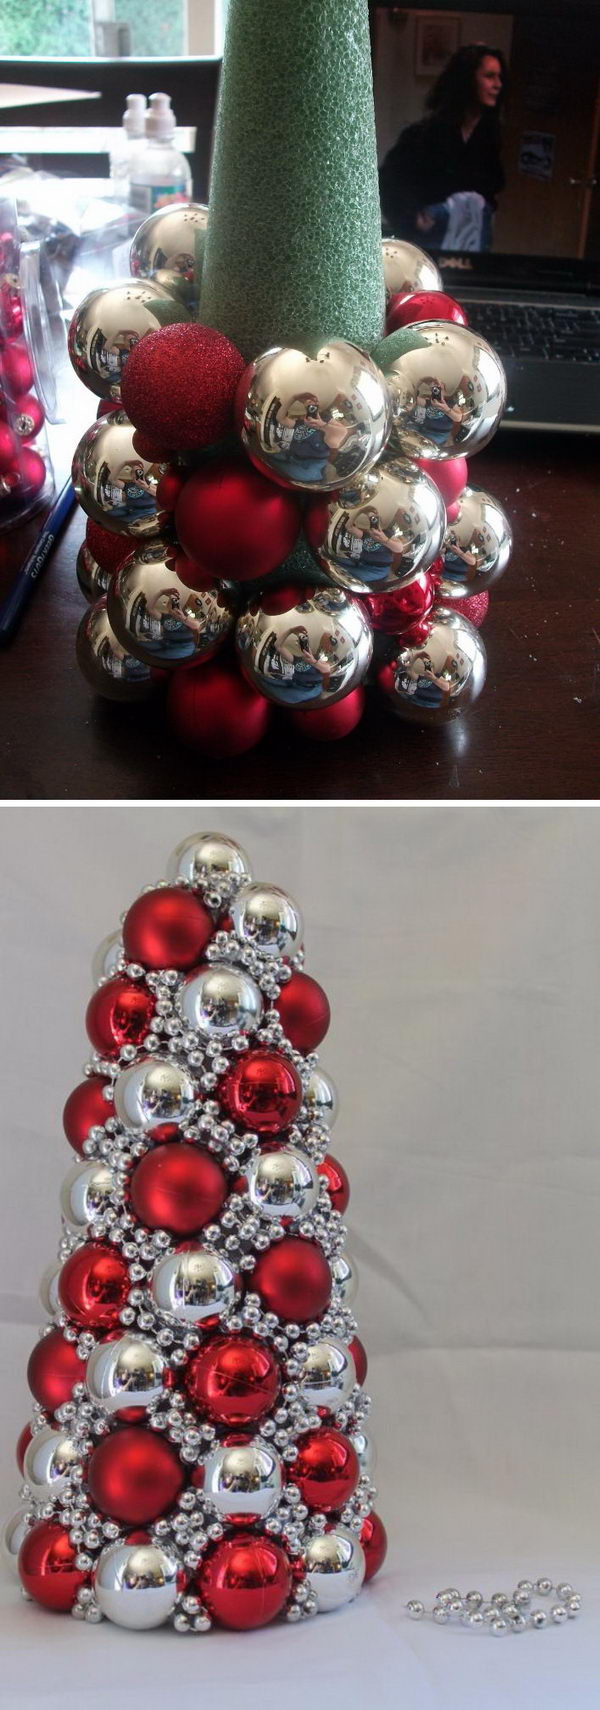 20 great ways to decorate your home with christmas ornaments Cool christmas house decorations